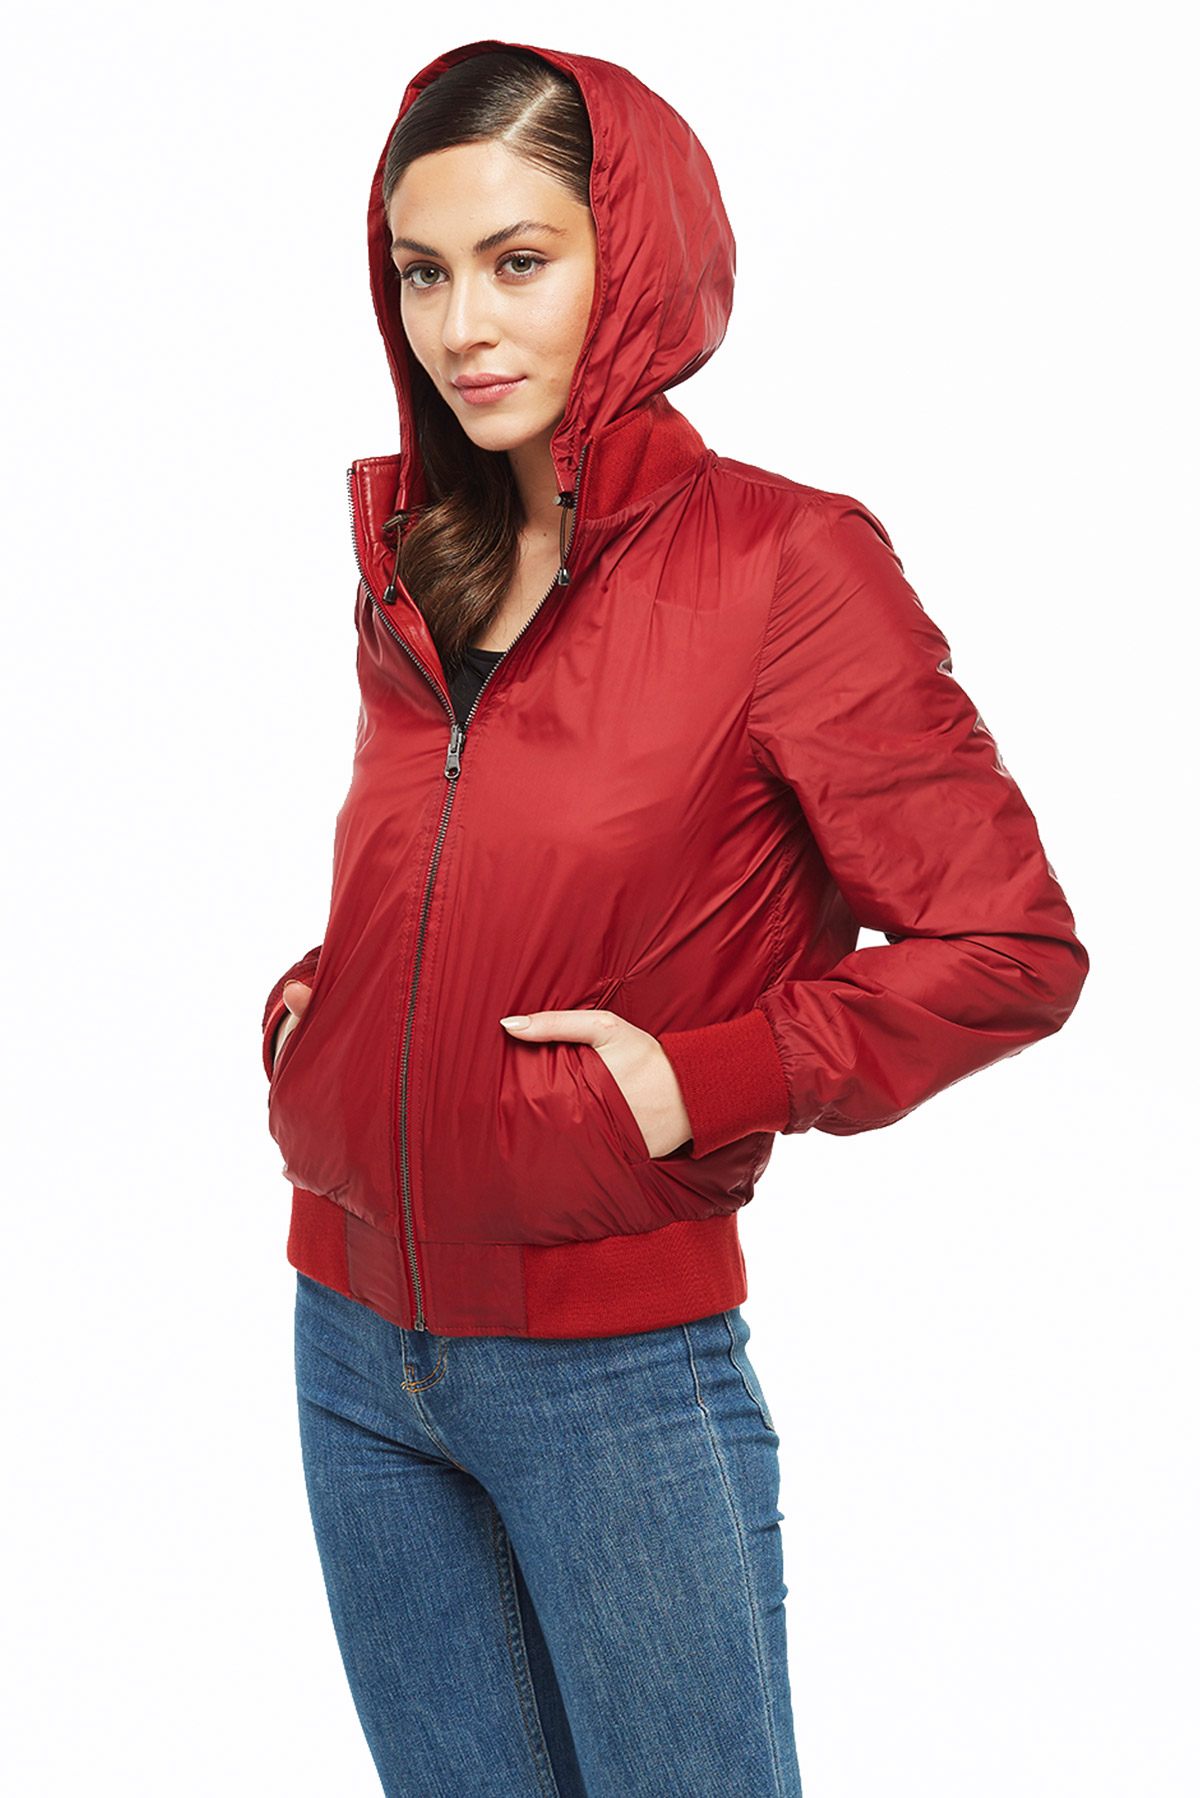 smart fit womens double sided bomber jacket